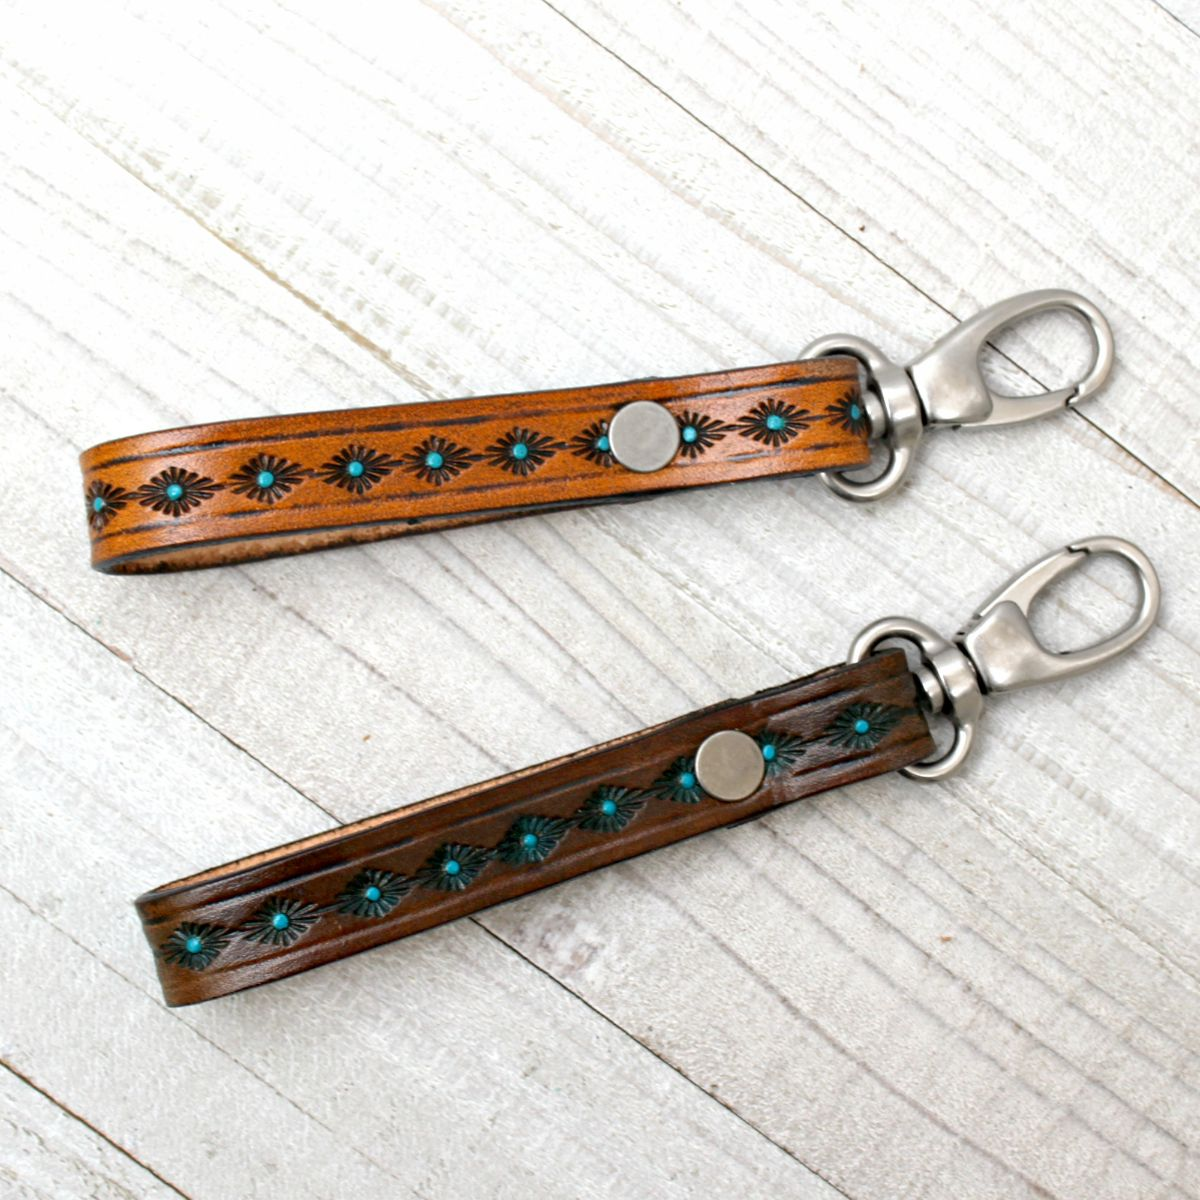 southwestern-leather-key-fob-the-leather-smithy_1